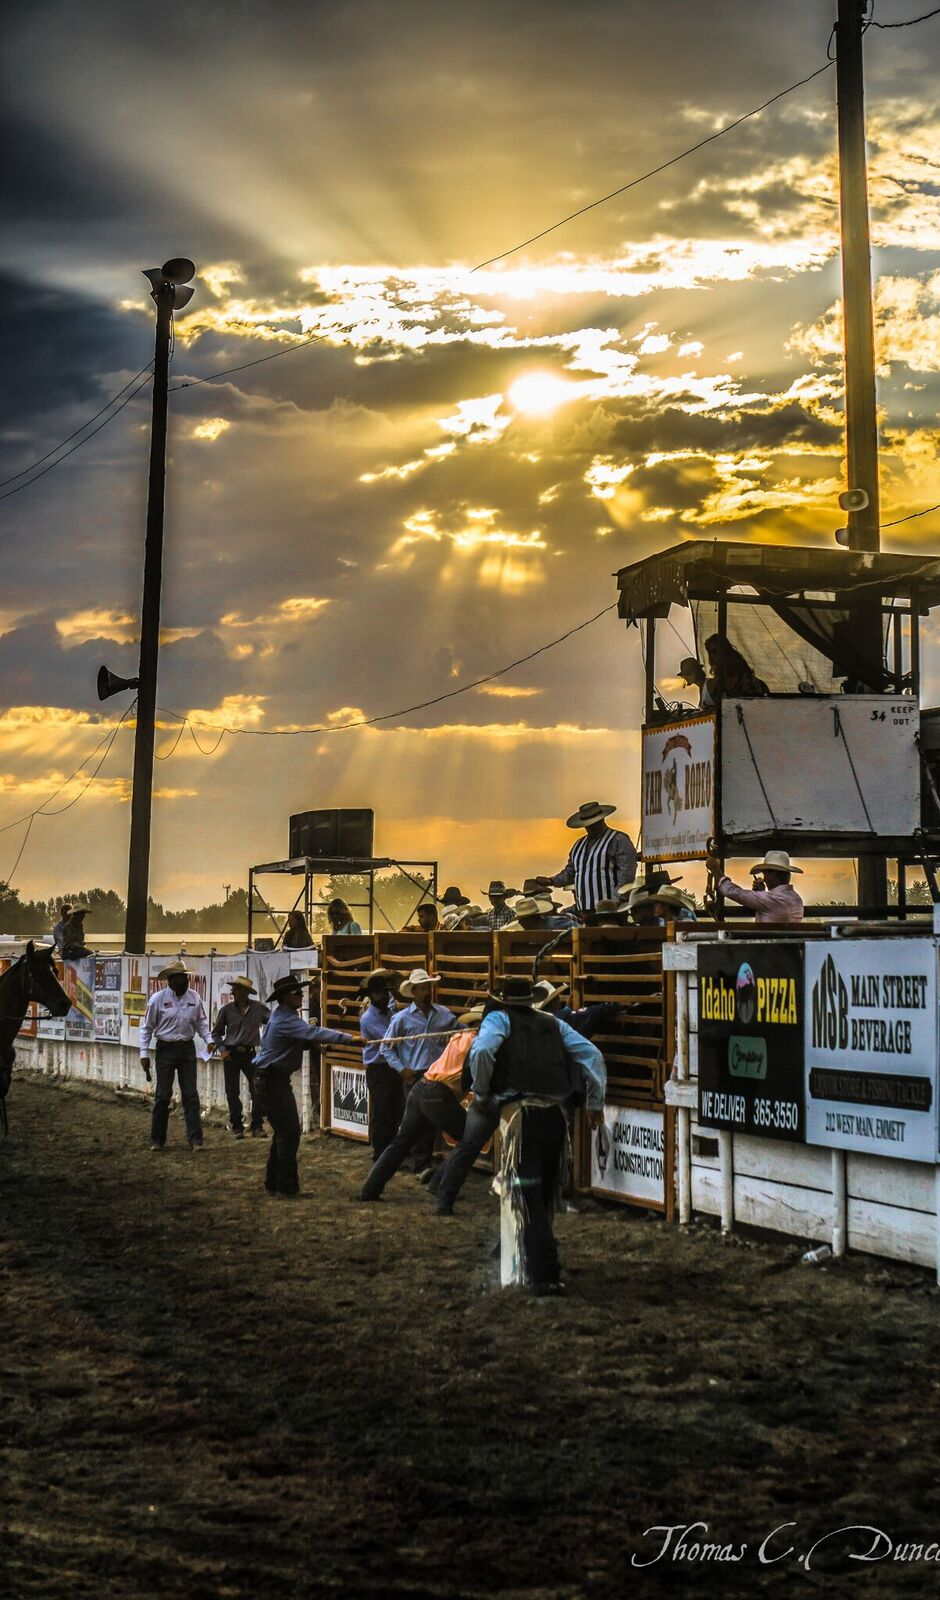 08262016_Boise-Gem-Co-Rodeo-sunset-over-rodeo